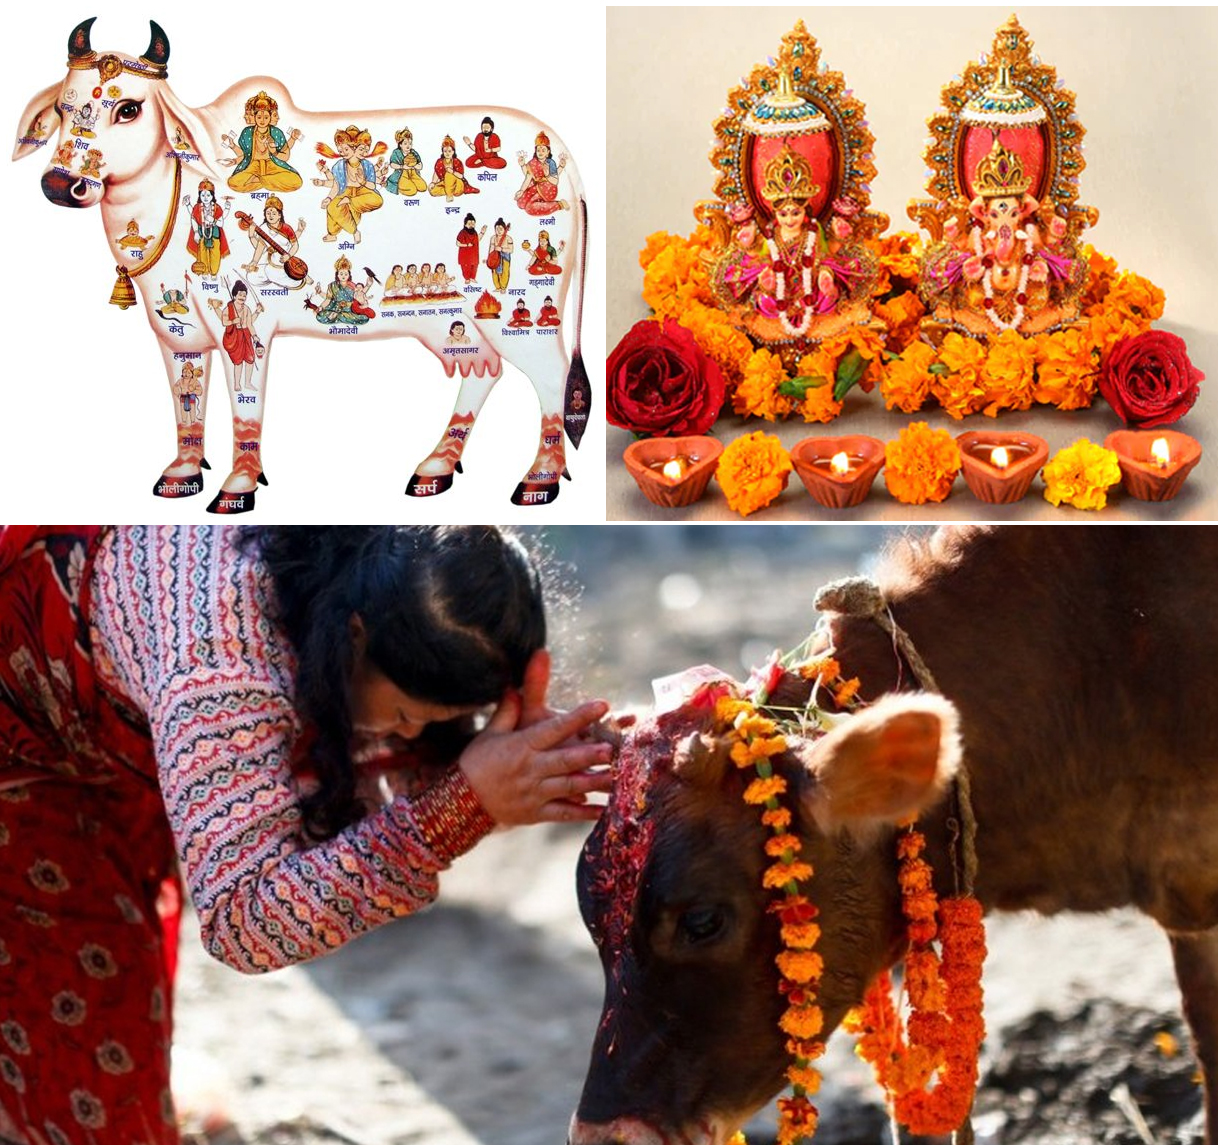 Gai Puja, Govardhan Puja and Mha Puja being observed